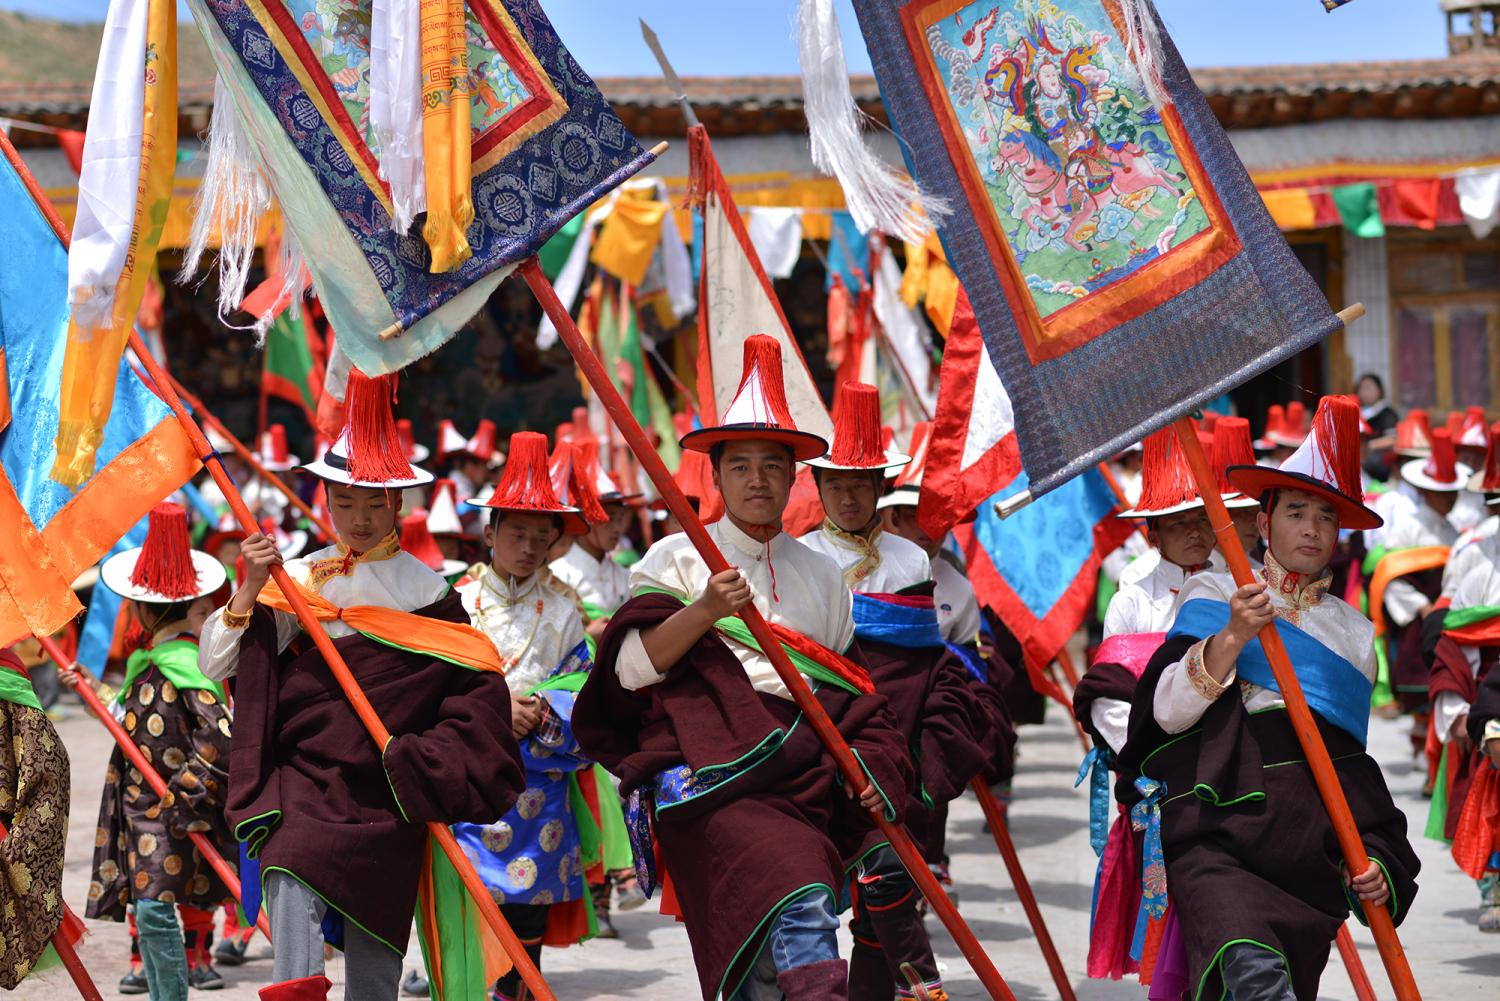 Wey La (be lha བེ་ལྷ) begins the final day of Lurol. Men march in the temple courtyard holding flags, spears, and paintings of deities.